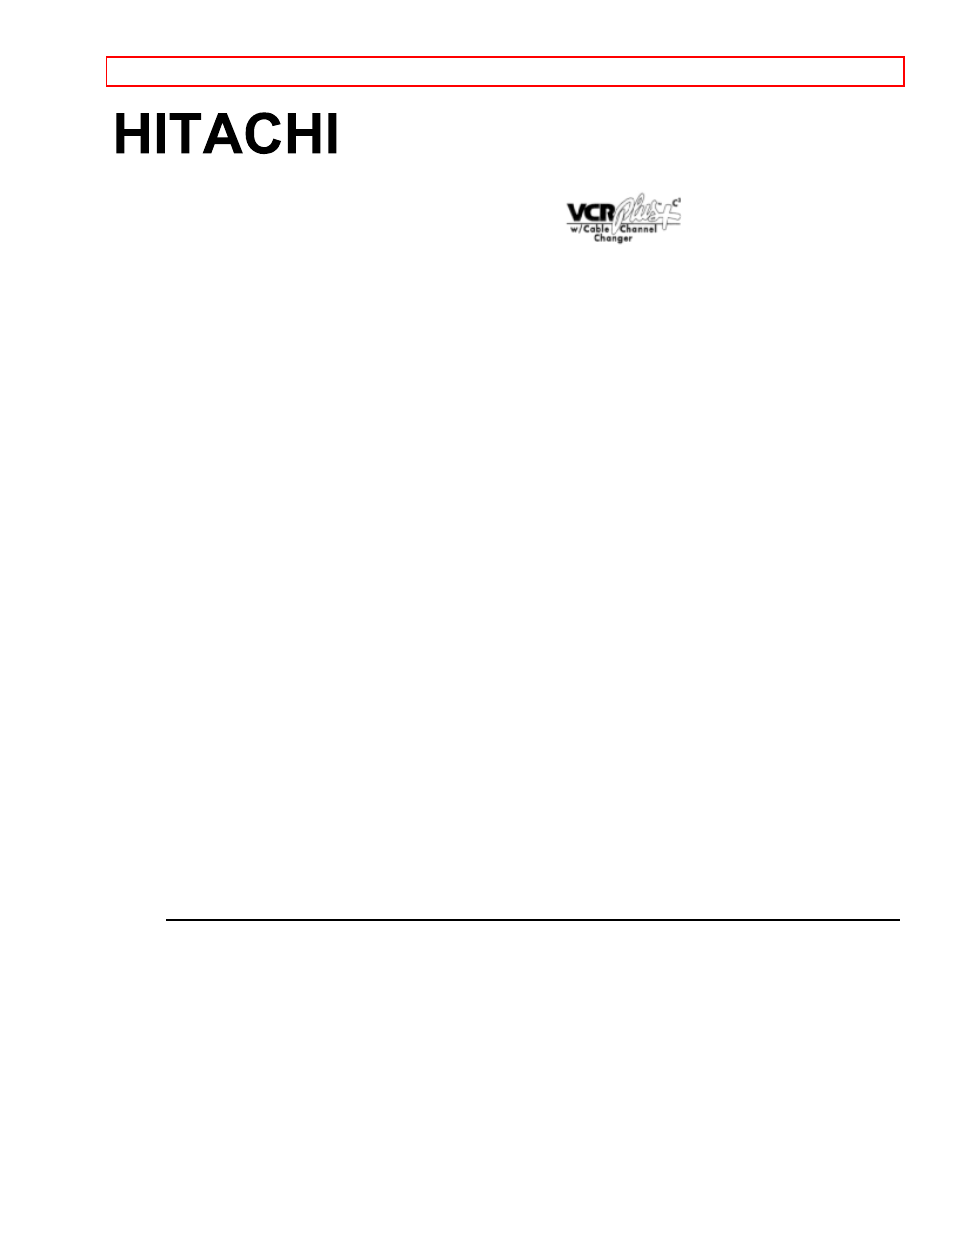 hitachi vt ux605a user manual 83 pages rh manualsdir com User Guide Template Kindle Fire User Guide